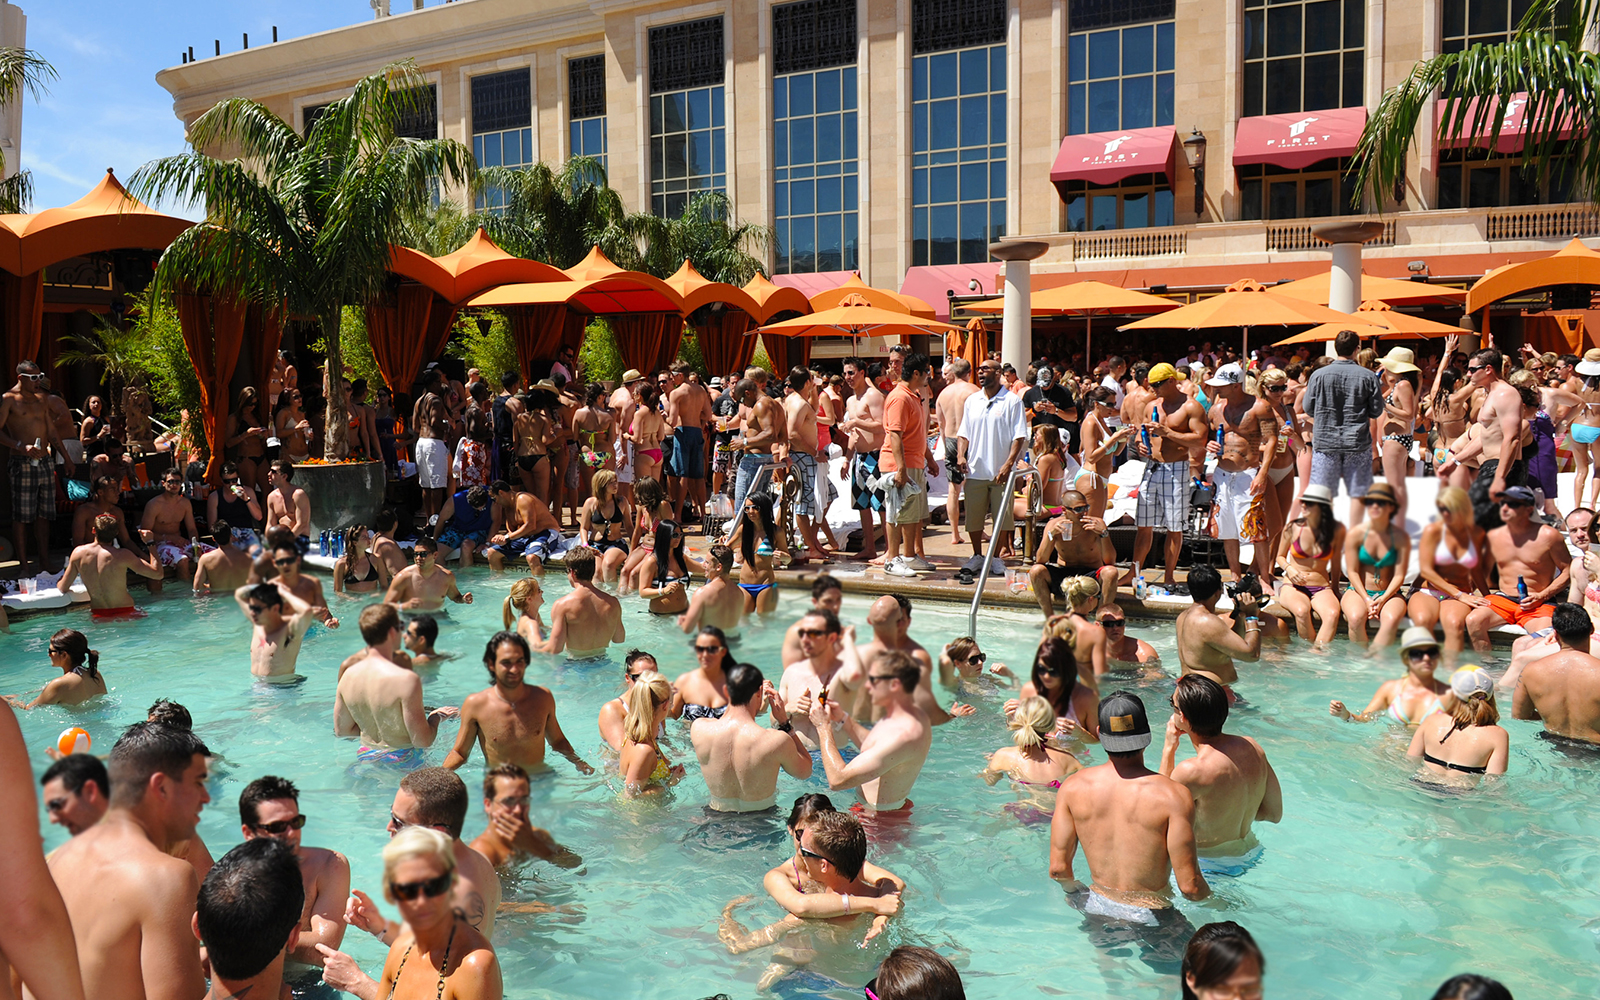 Best Pools in Las Vegas: Tao Beach, The Venetian